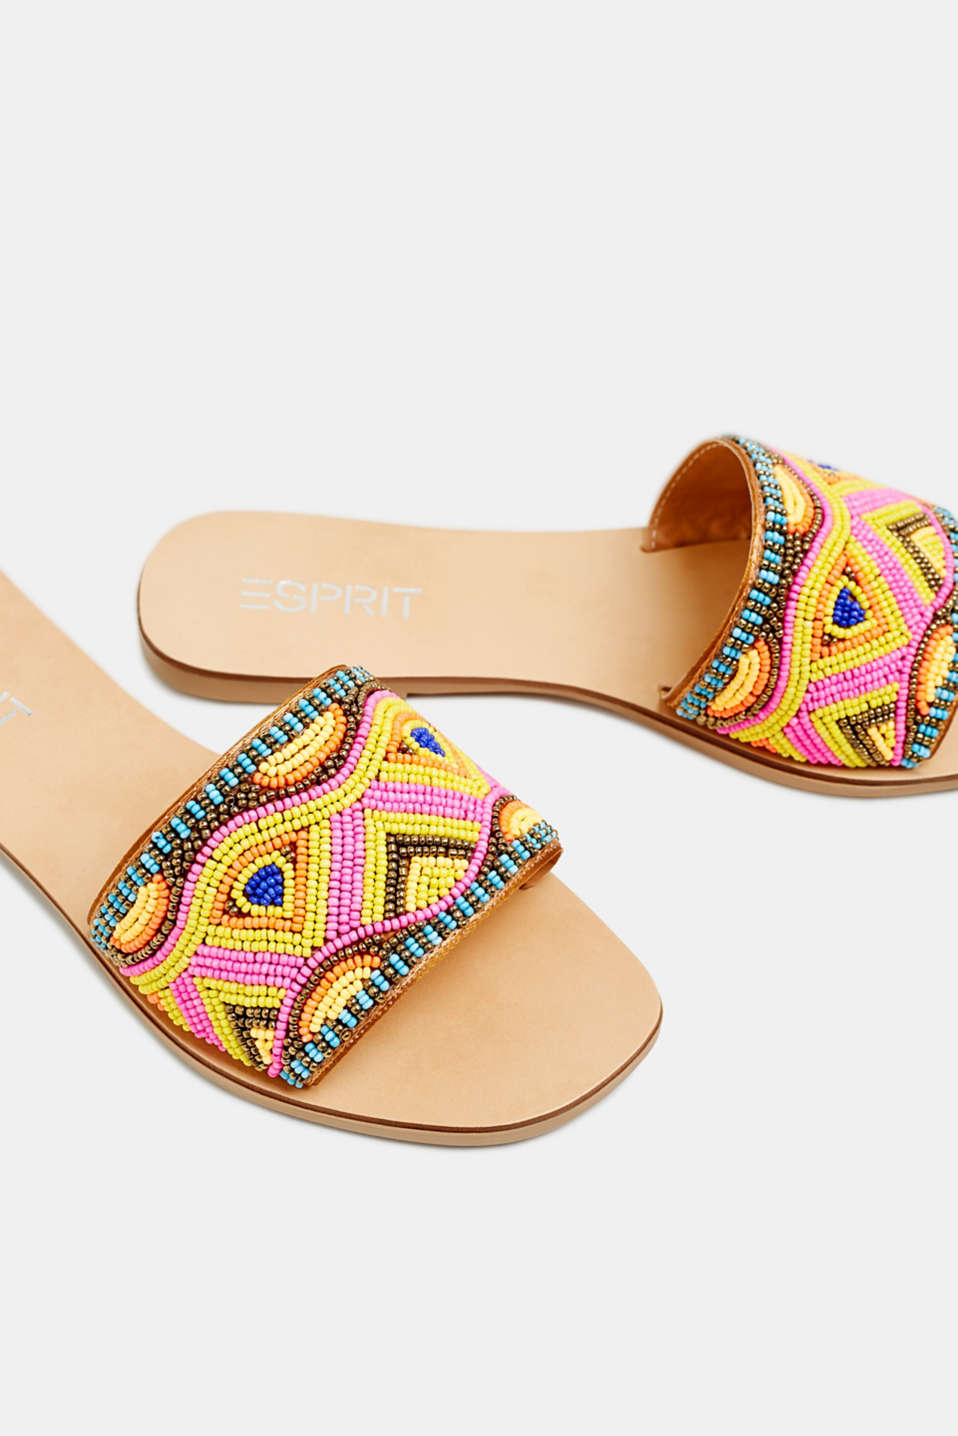 Slip-on sandals with appliquéd beads, YELLOW, detail image number 4